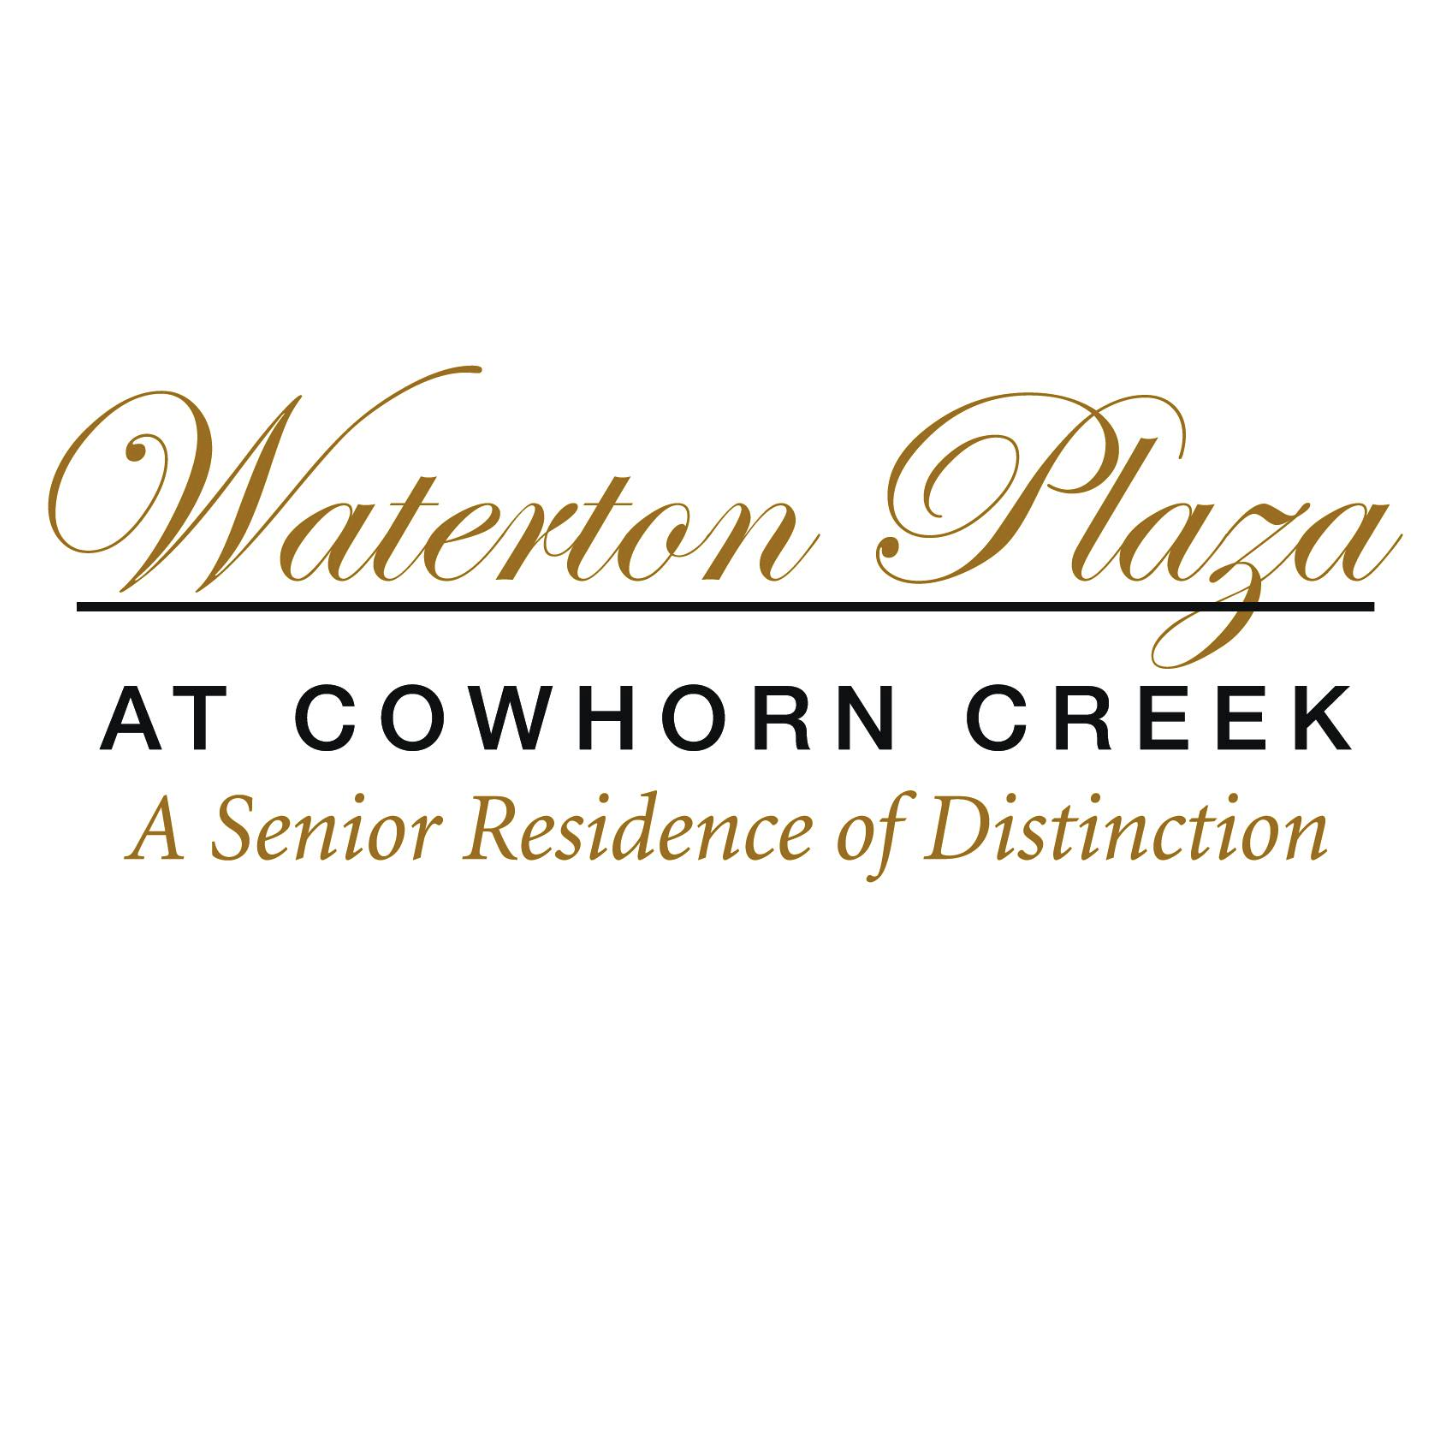 Waterton Plaza at Cowhorn Creek